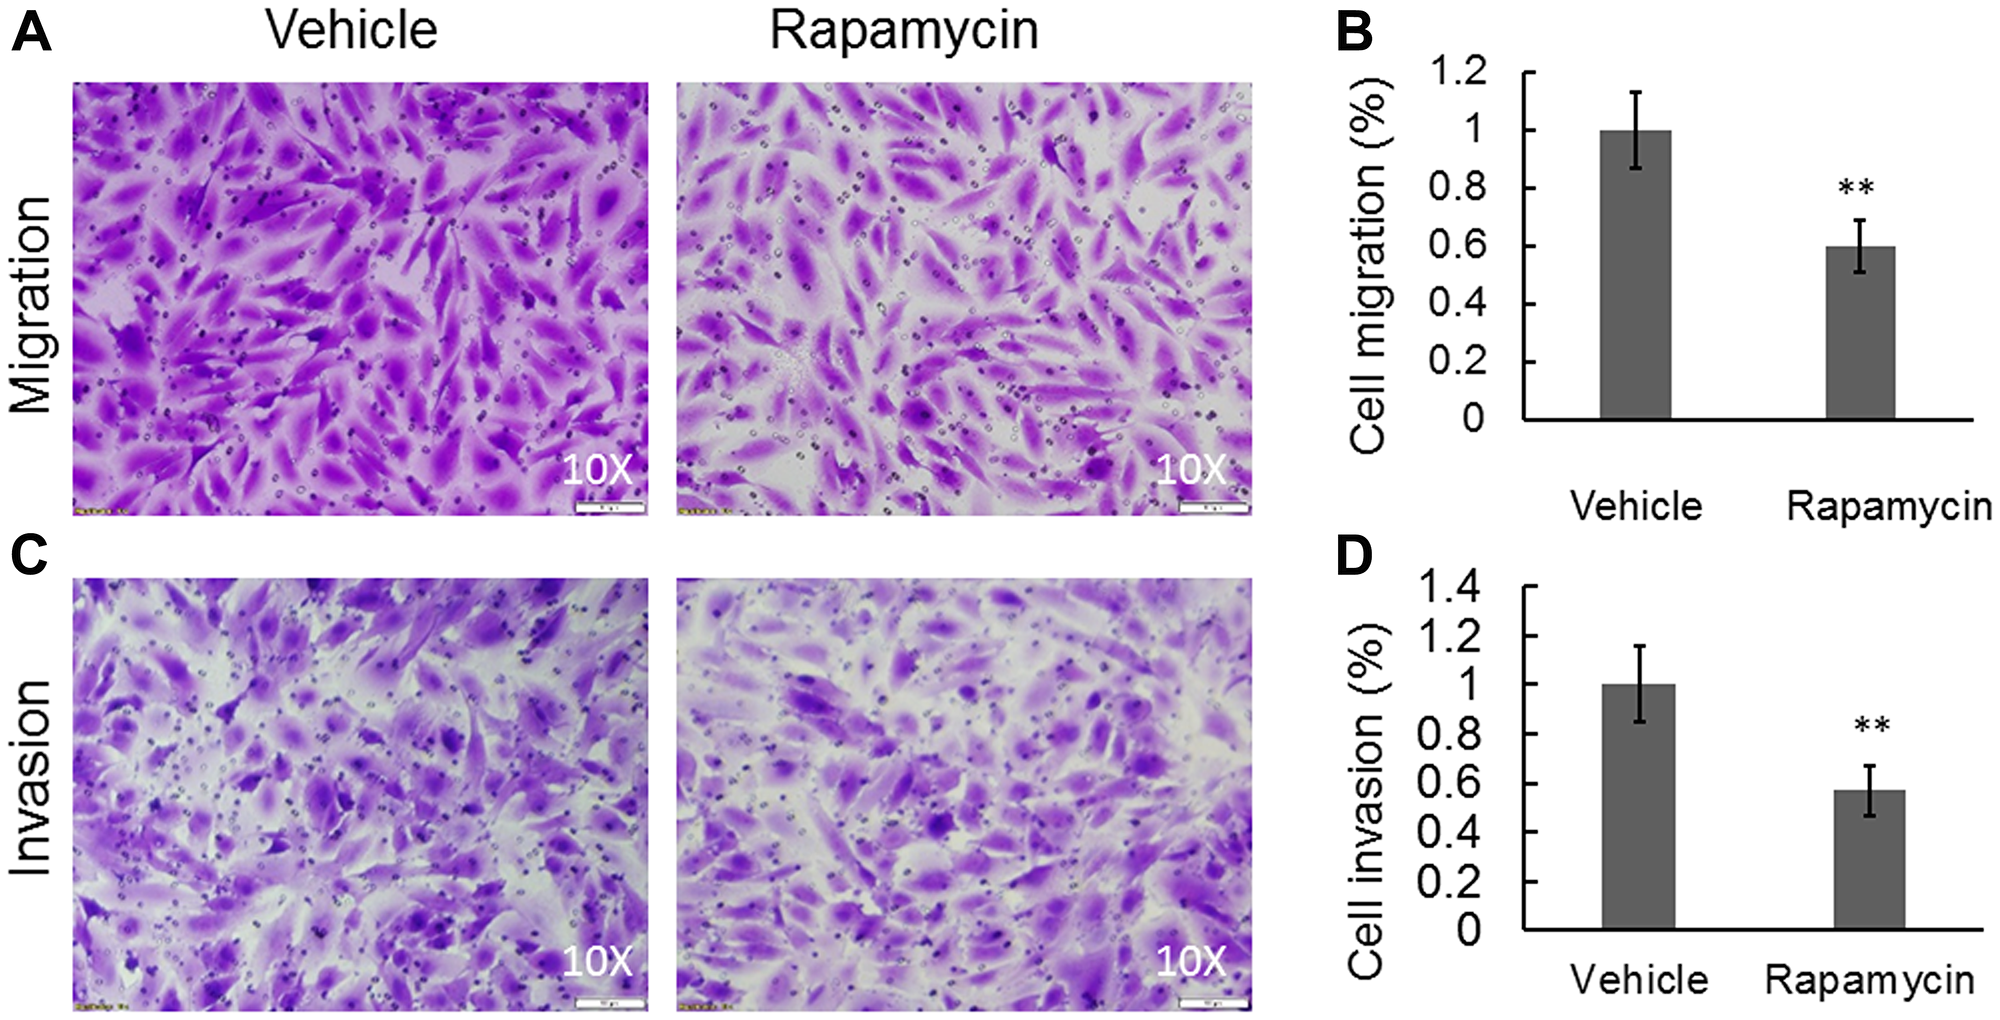 Rapamycin was able to significantly inhibit cell migration and invasion in a Boyden chamber-based system.